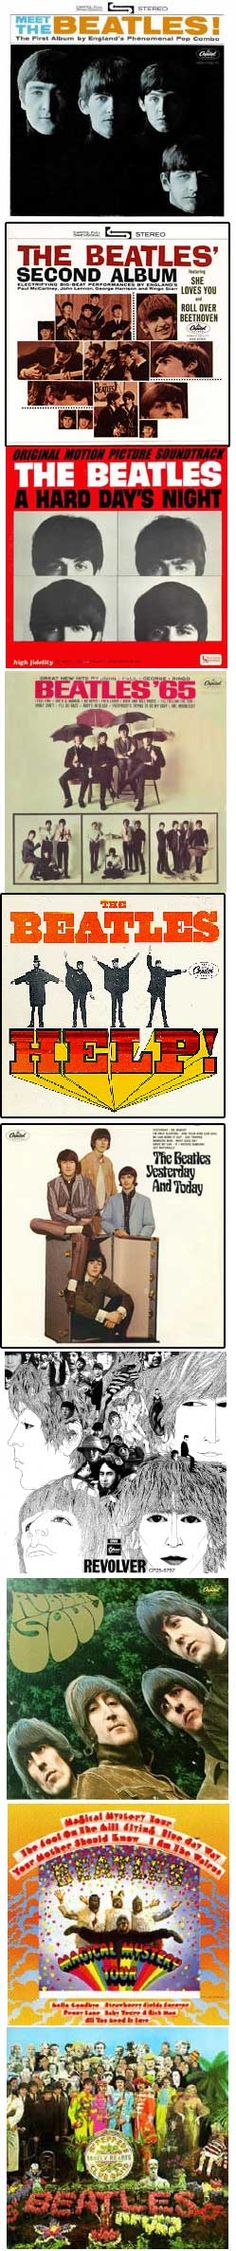 The beatle albums covers